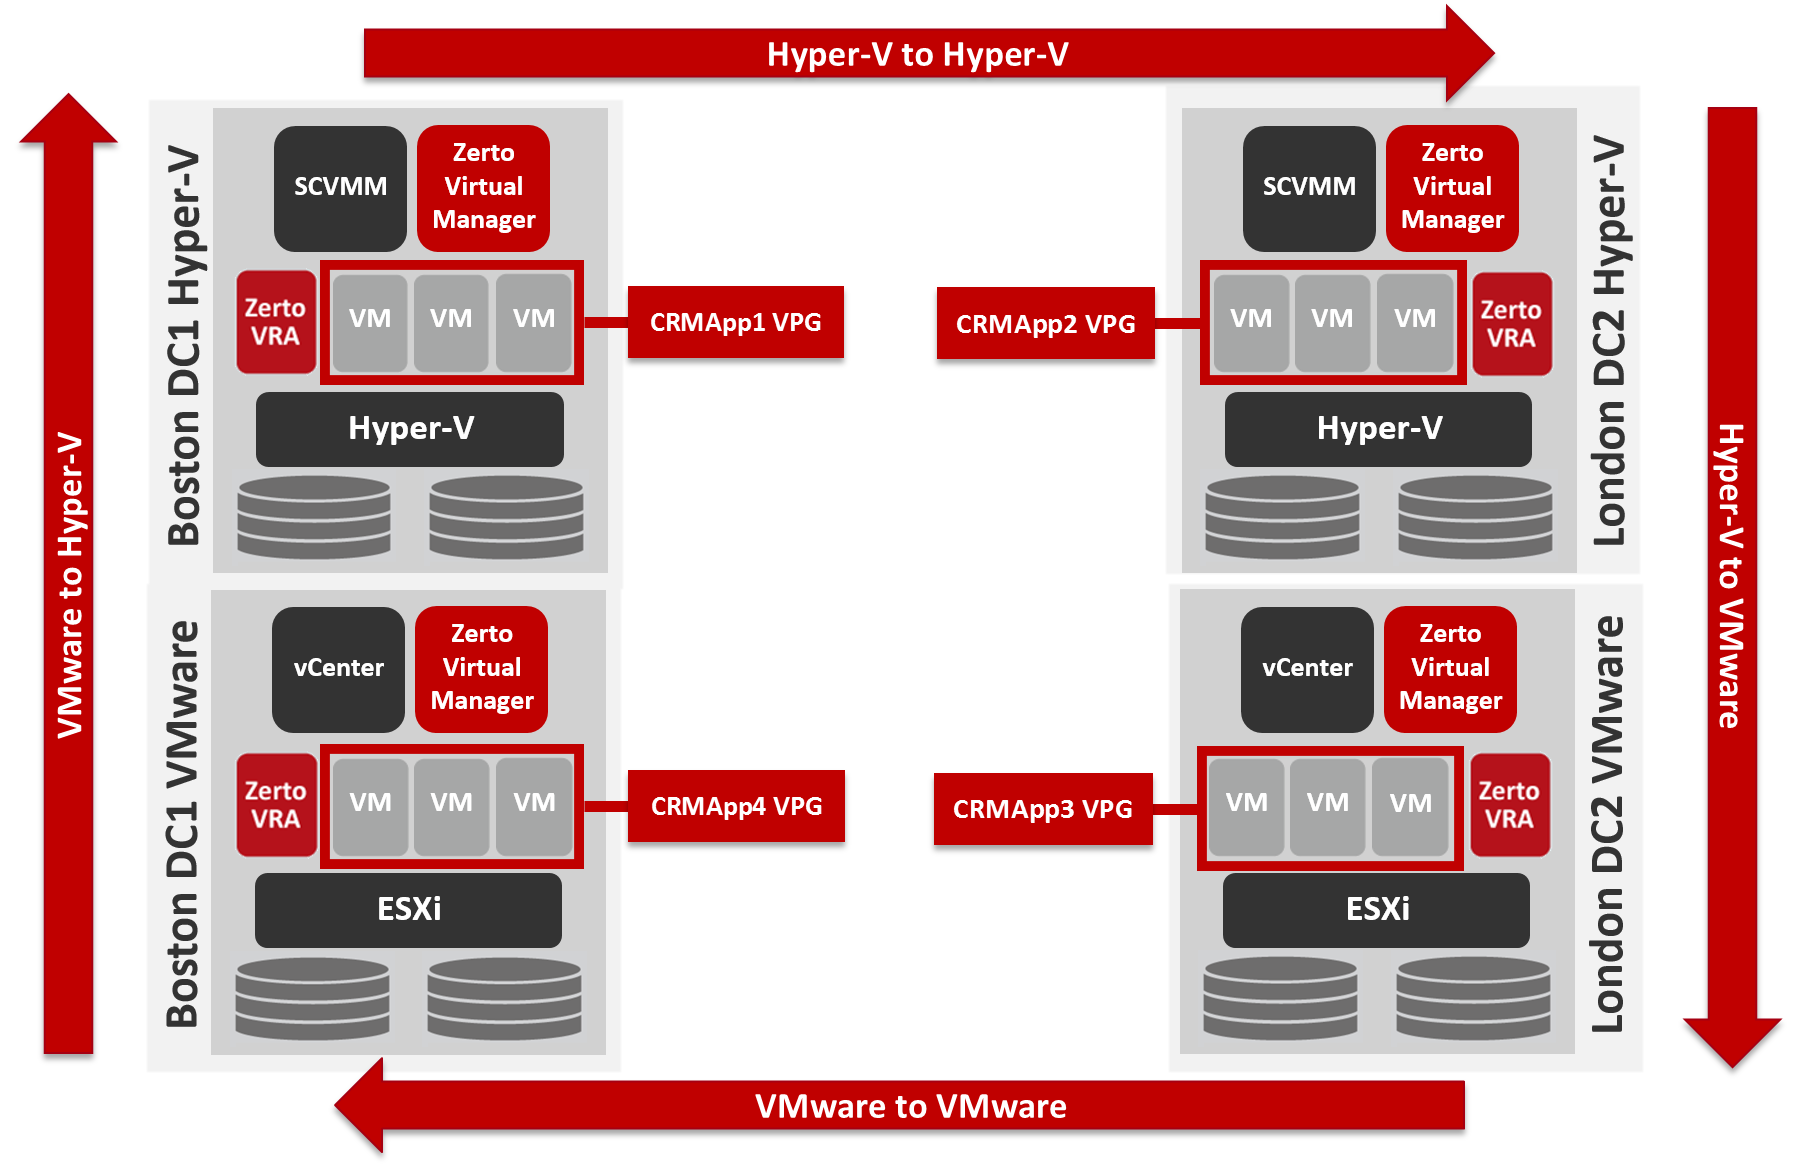 Cross-Hypervisor Replication for Hyper-V and VMware | Zerto